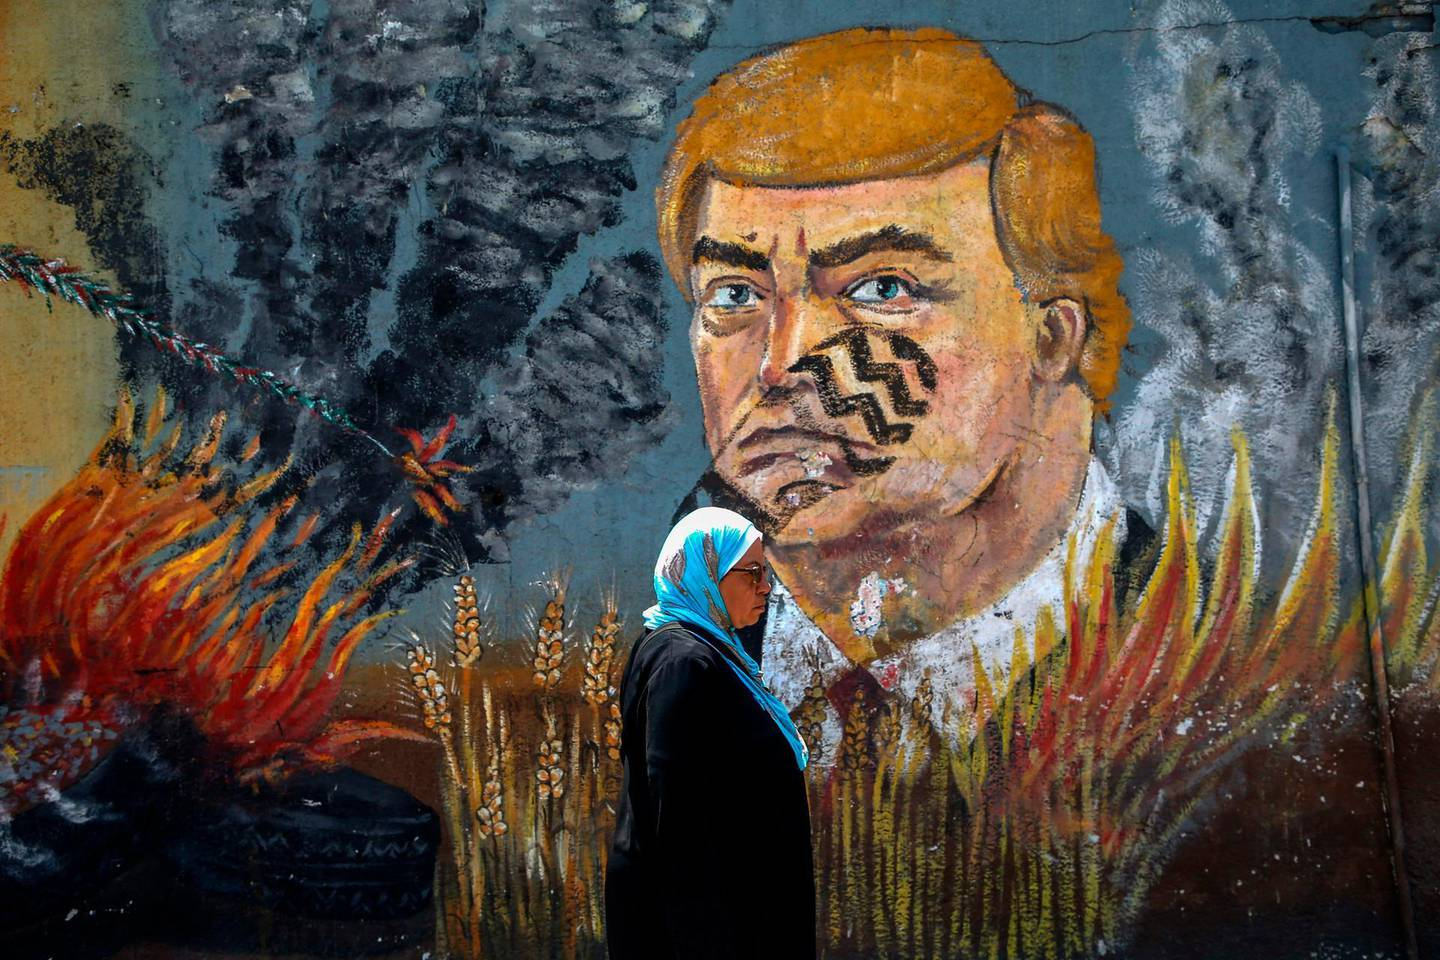 A Palestinian woman walks past a graffiti depicting US President Donald Trump with a footprint on his face in Gaza City on June 23, 2019. The United States is set to co-chair a two-day conference in Bahrain from June 25 focusing on the economic aspects of President Donald Trump's Israeli-Palestinian peace plan. The Palestinians confirmed in May they will not participate in the conference, adding they were not consulted beforehand. / AFP / MOHAMMED ABED